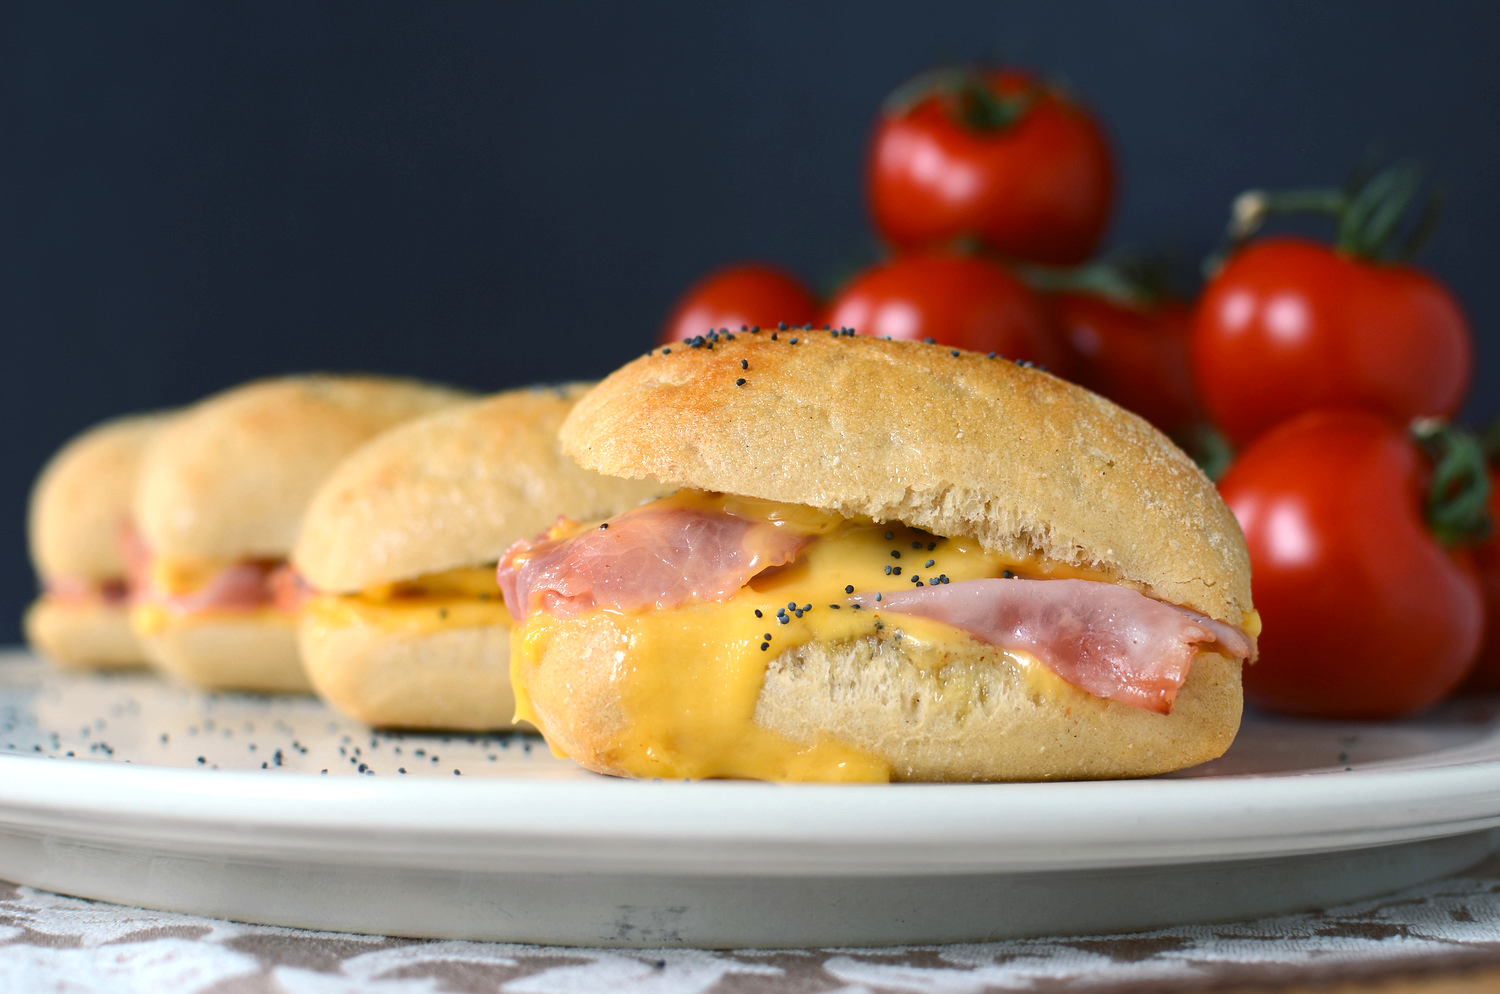 Hot Ham and Cheese Sandwiches with Onion Butter - ButterYum. oven baked sandwiches. football food recipes. foods for the big game. game day recipes. tailgate recipes. big game finger good. game appetizers. game sandwiches. hot sandwich recipe.